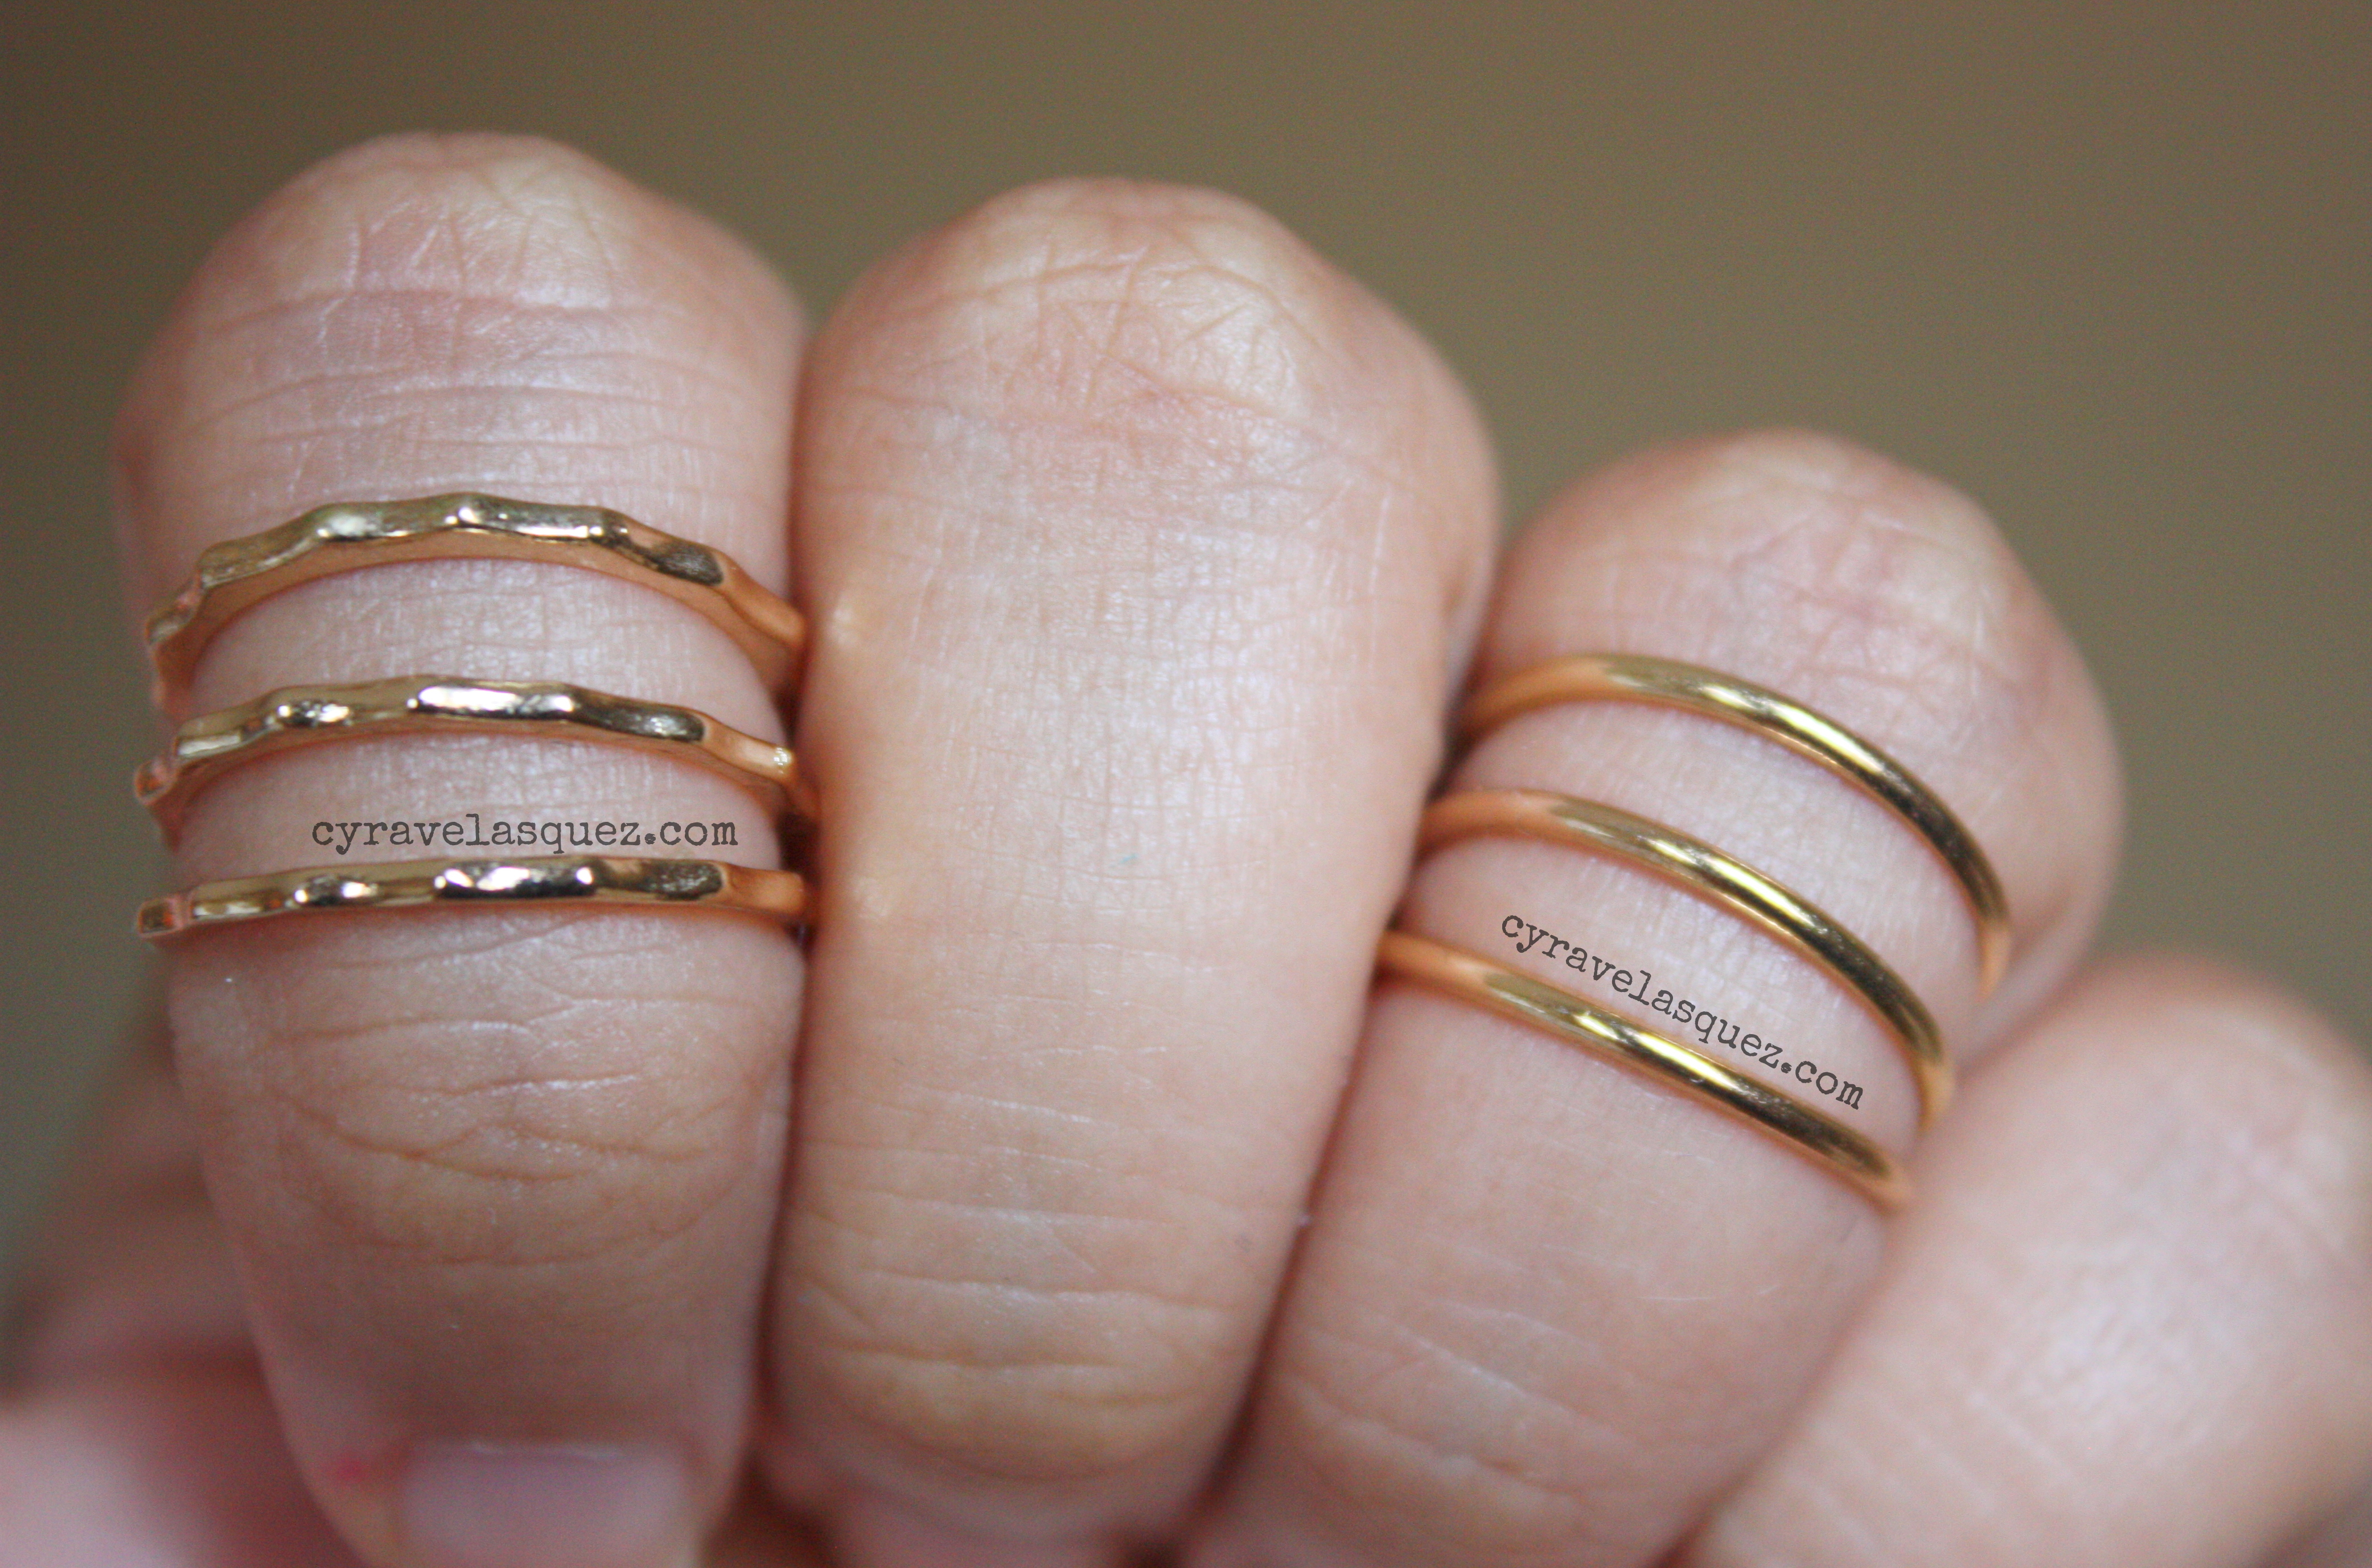 Gold knuckle rings and middy rings worn by Cyra Velasquez.